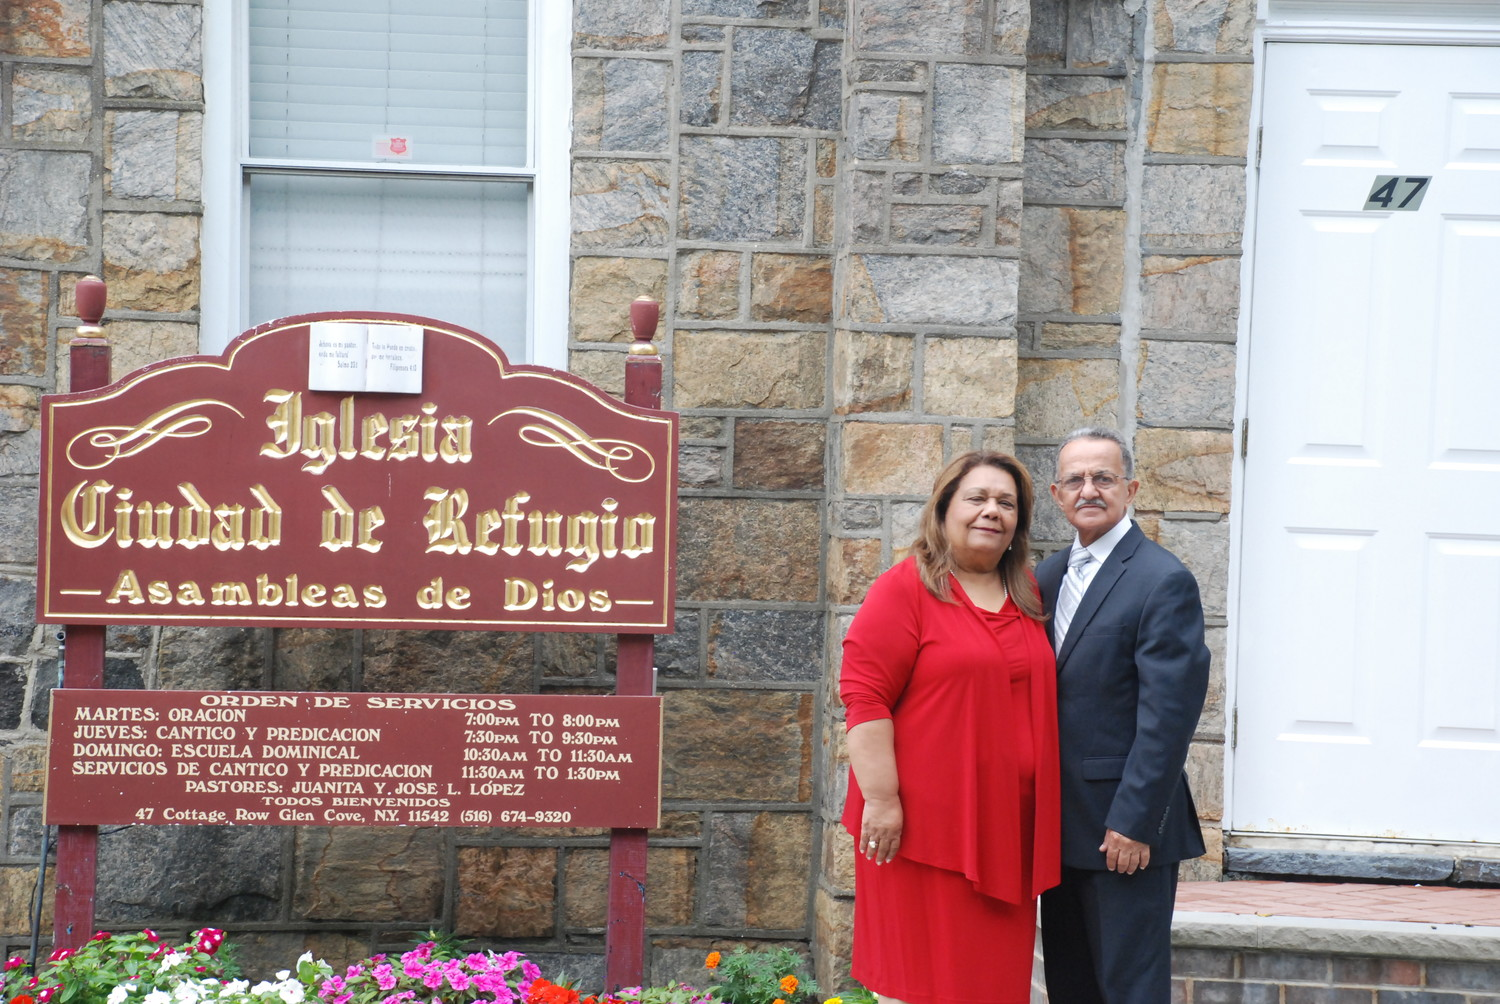 The Revs. Juanita and Jose Lopez, of Iglesia Ciudad De Refugio, recently celebrated their 40th anniversary as pastors of Glen Cove's oldest Hispanic church.